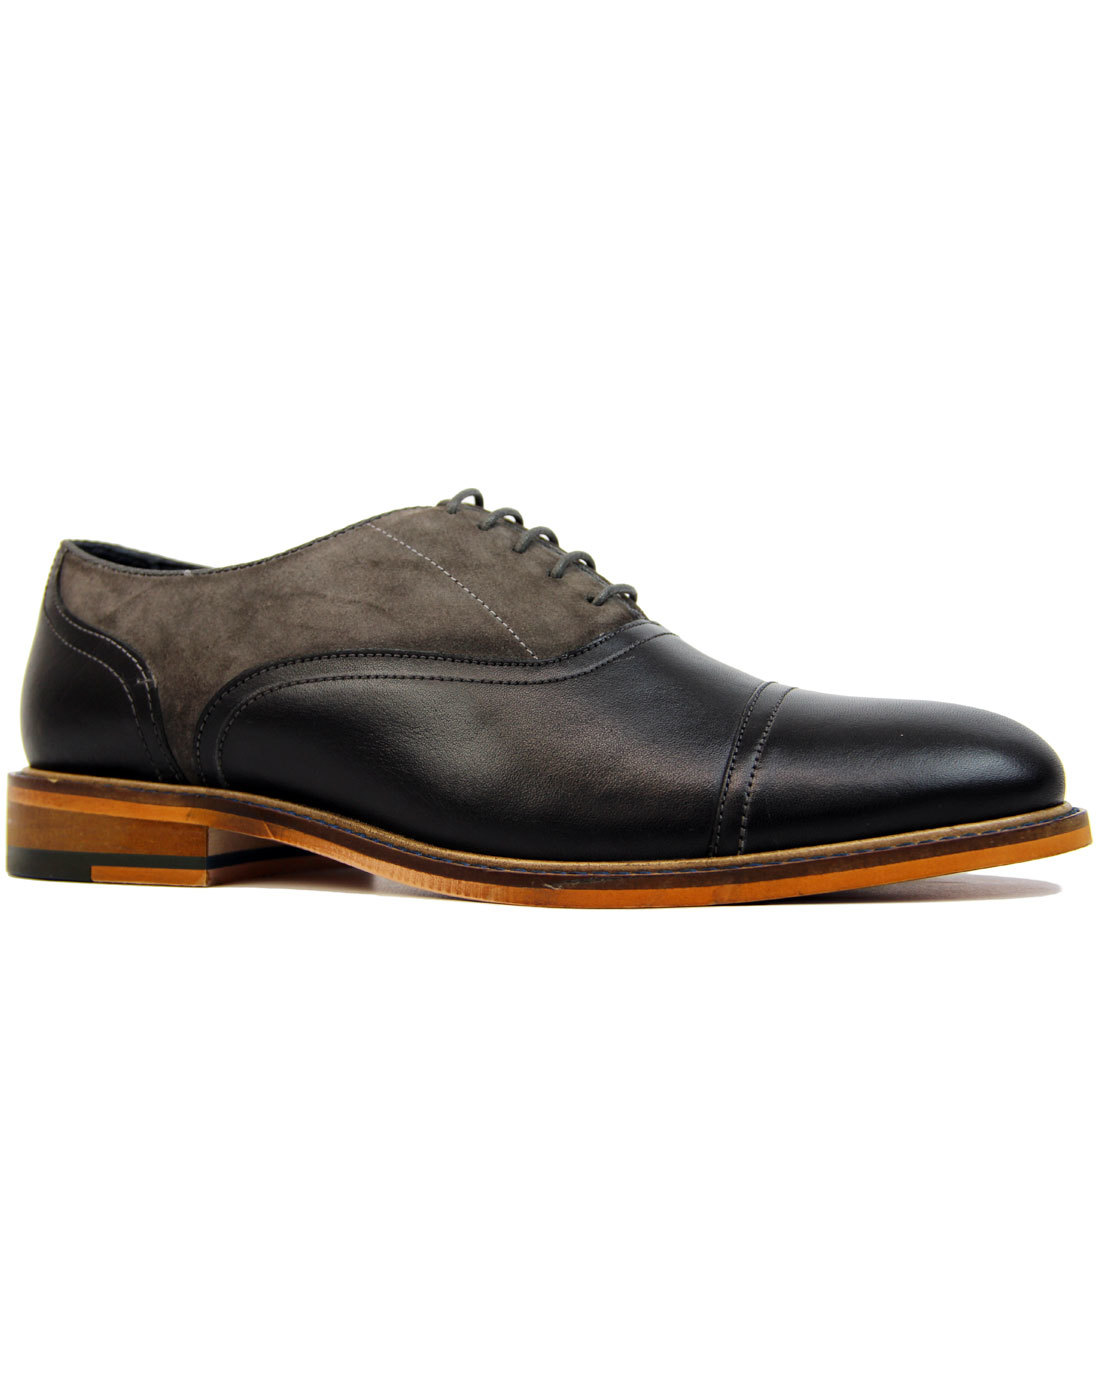 Ryder PAOLO VANDINI Suede & Leather Saddle Shoes B